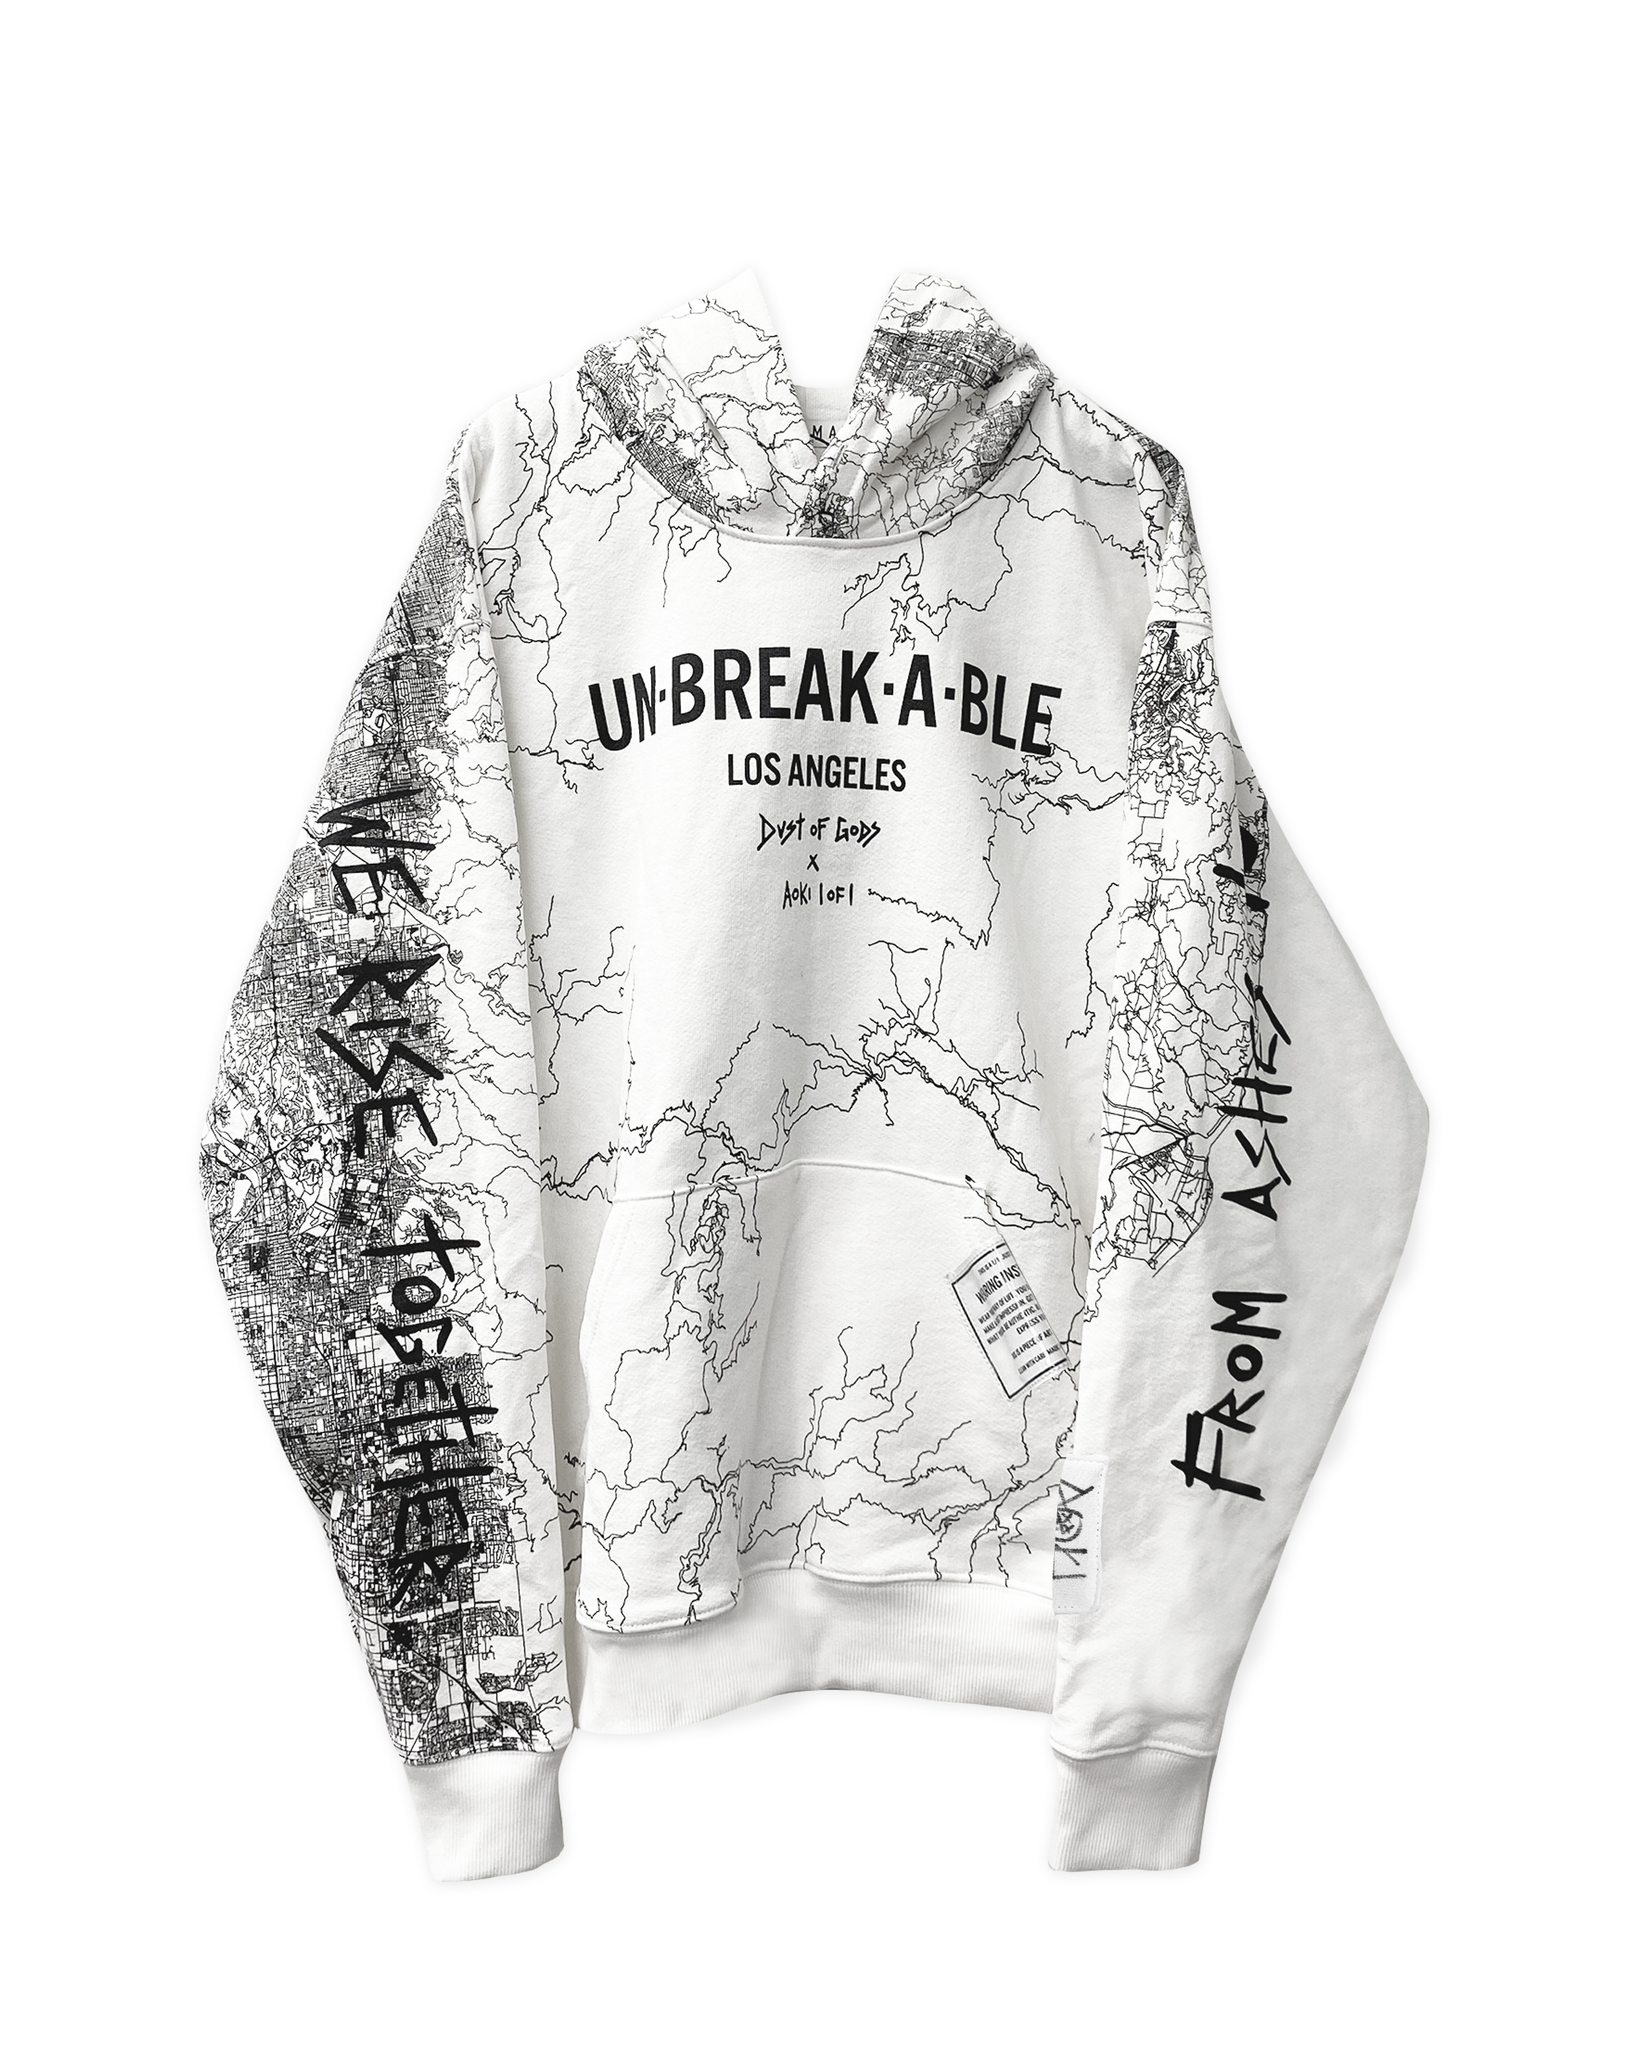 UN●BREAK●A●BLE LOS ANGELES WHITE HOODIE